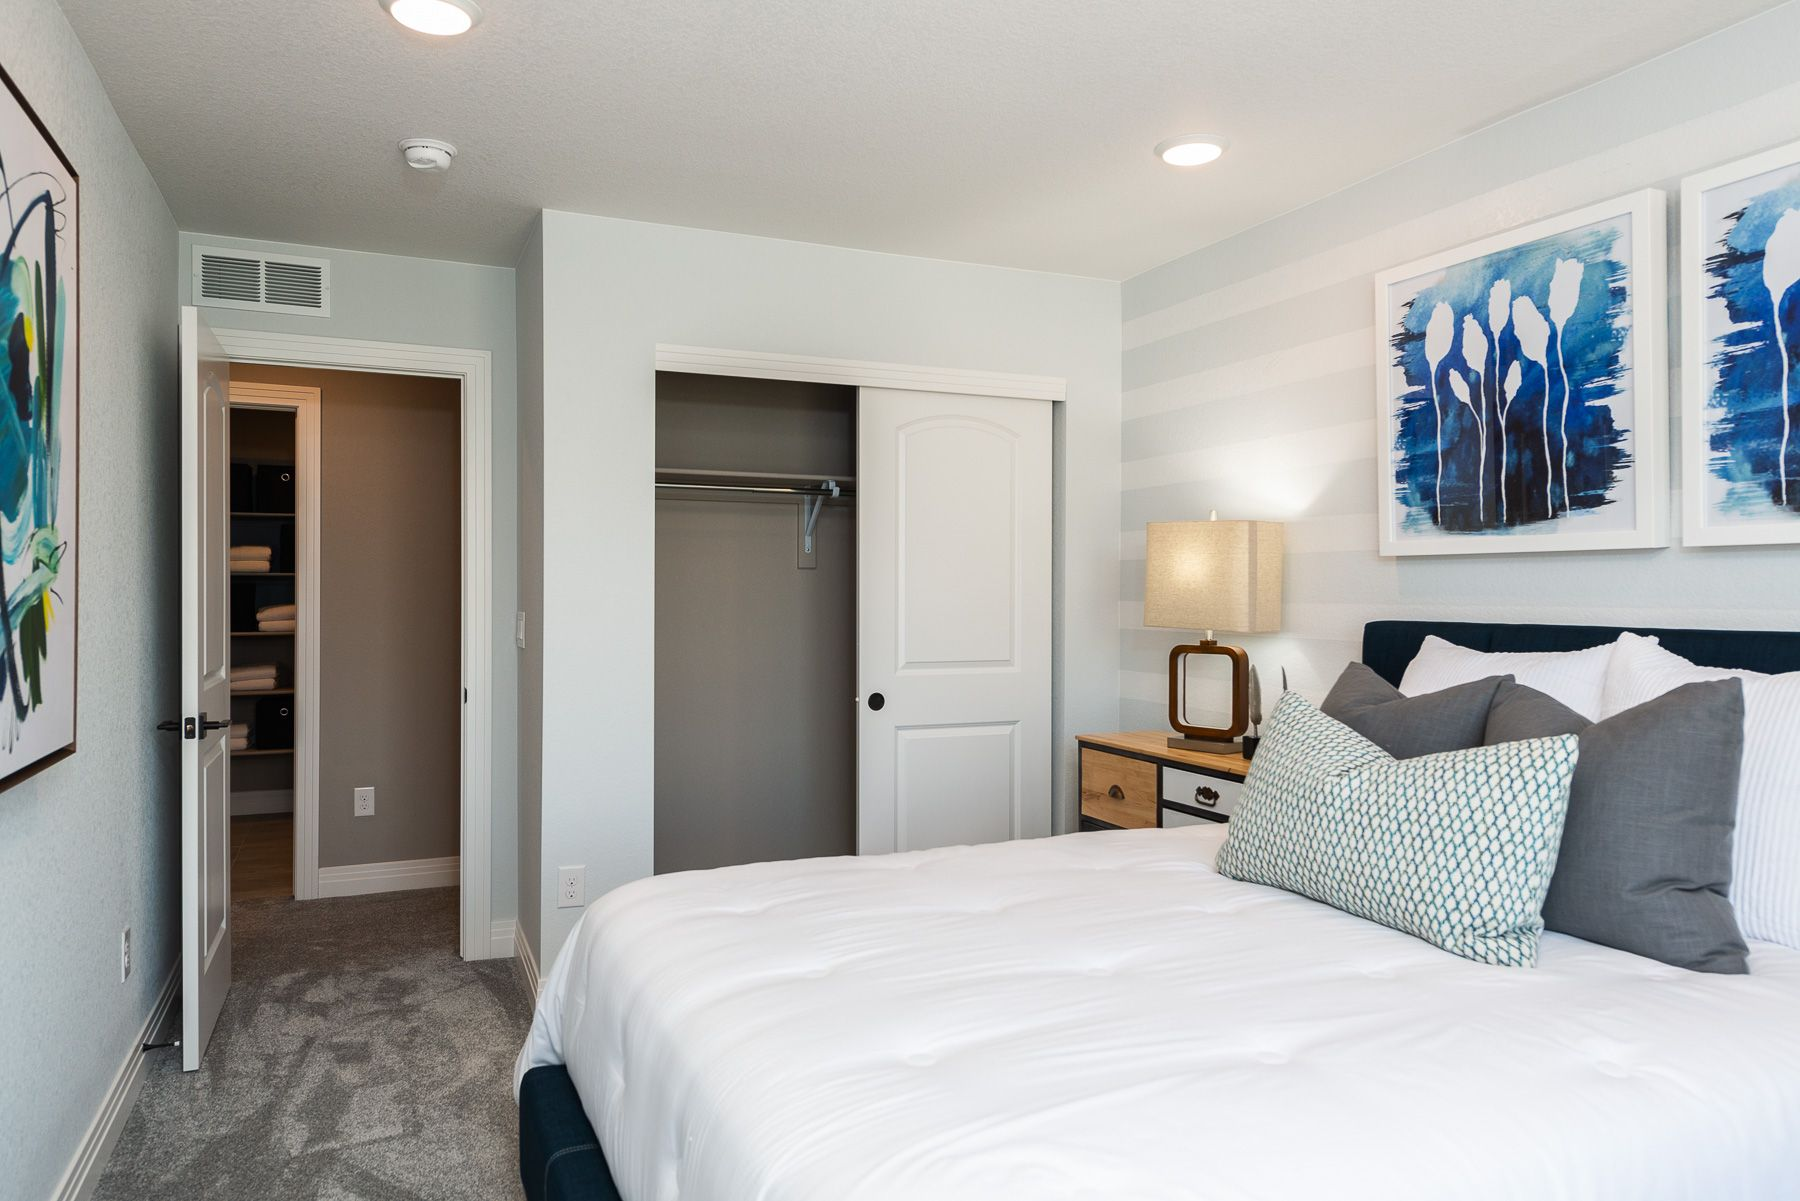 Bedroom featured in the Brett By Lokal Homes in Denver, CO